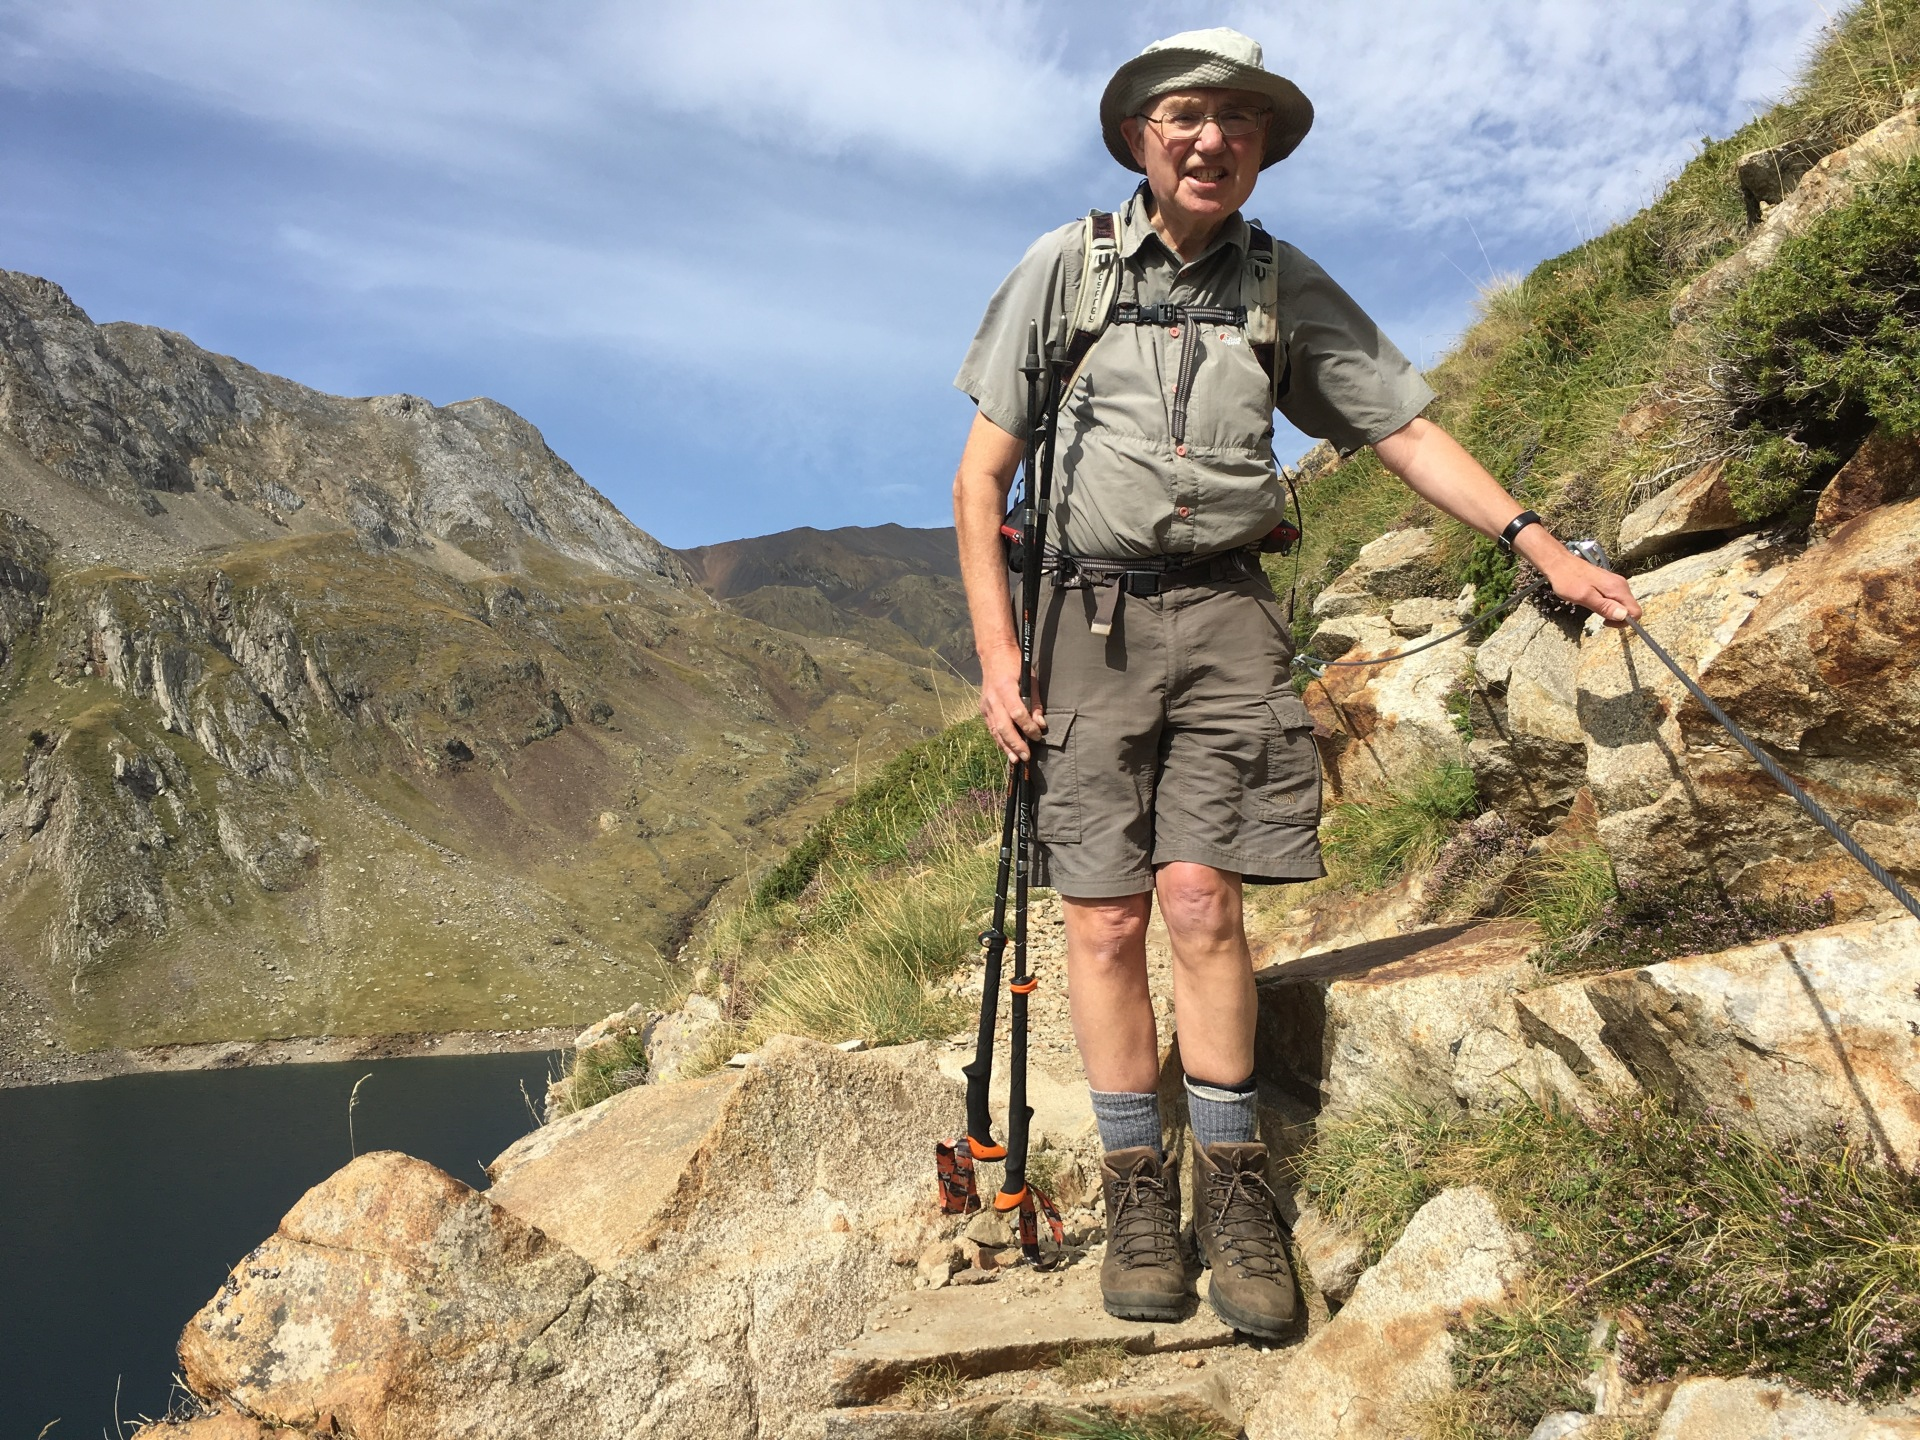 Hiking the Pyrenees with a new hip